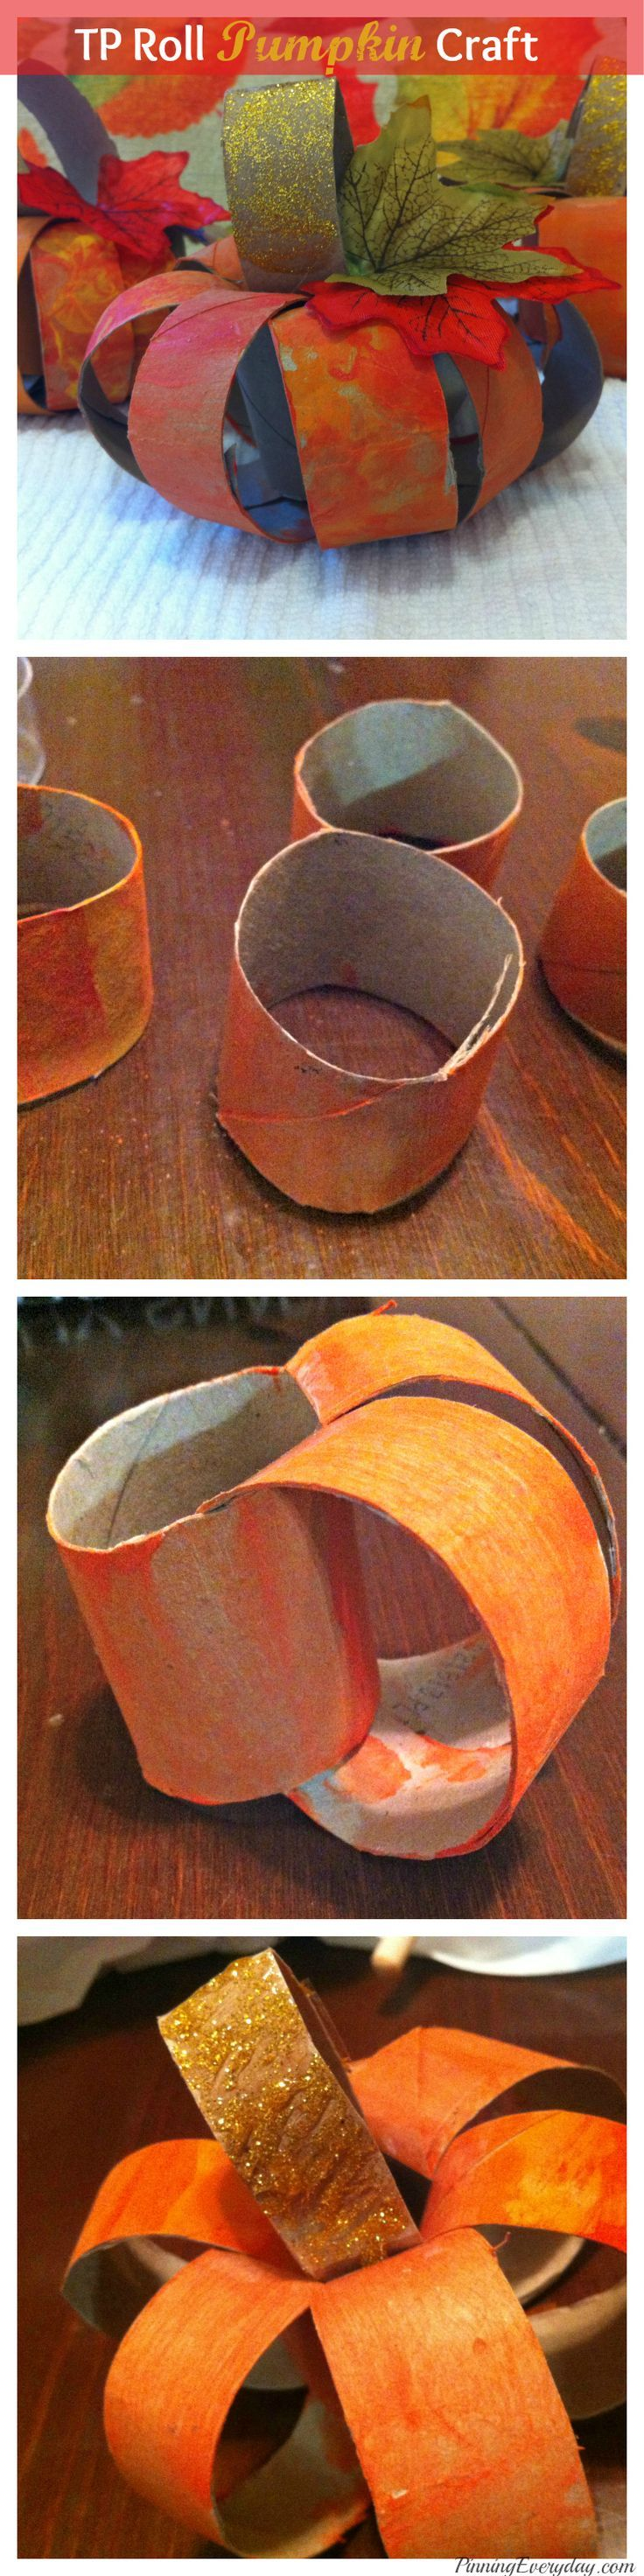 TP Roll Pumpkins that the children can make - Instructions on the site ≈≈: